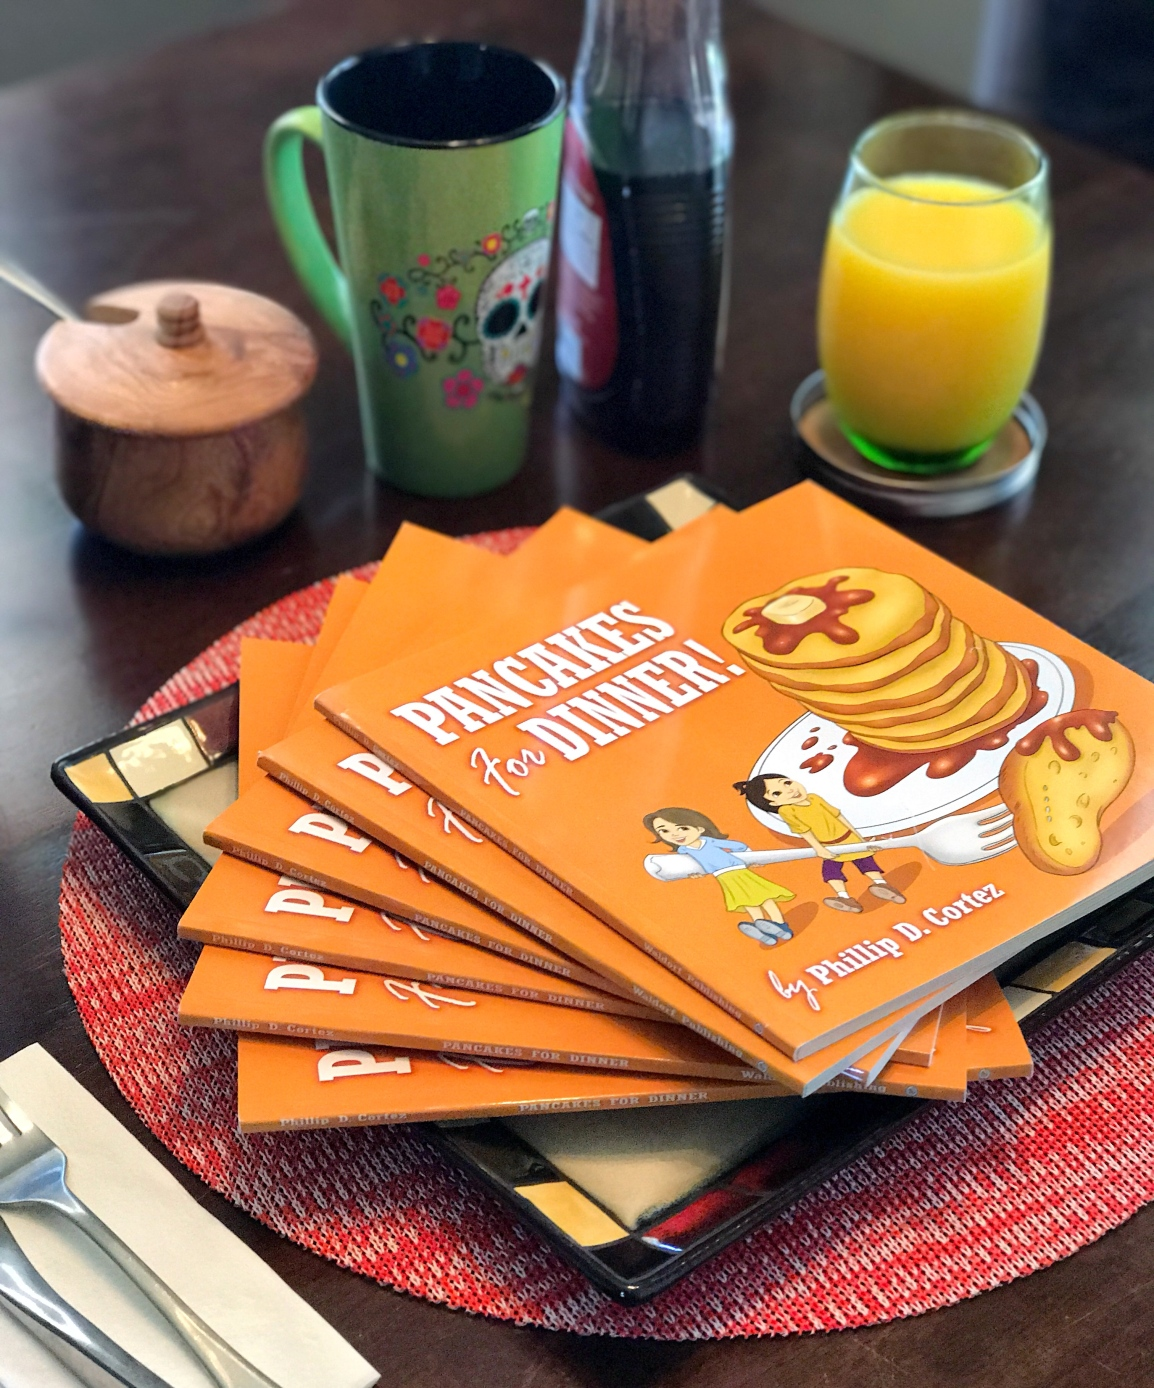 You're invited to a Pancake DinnerParty